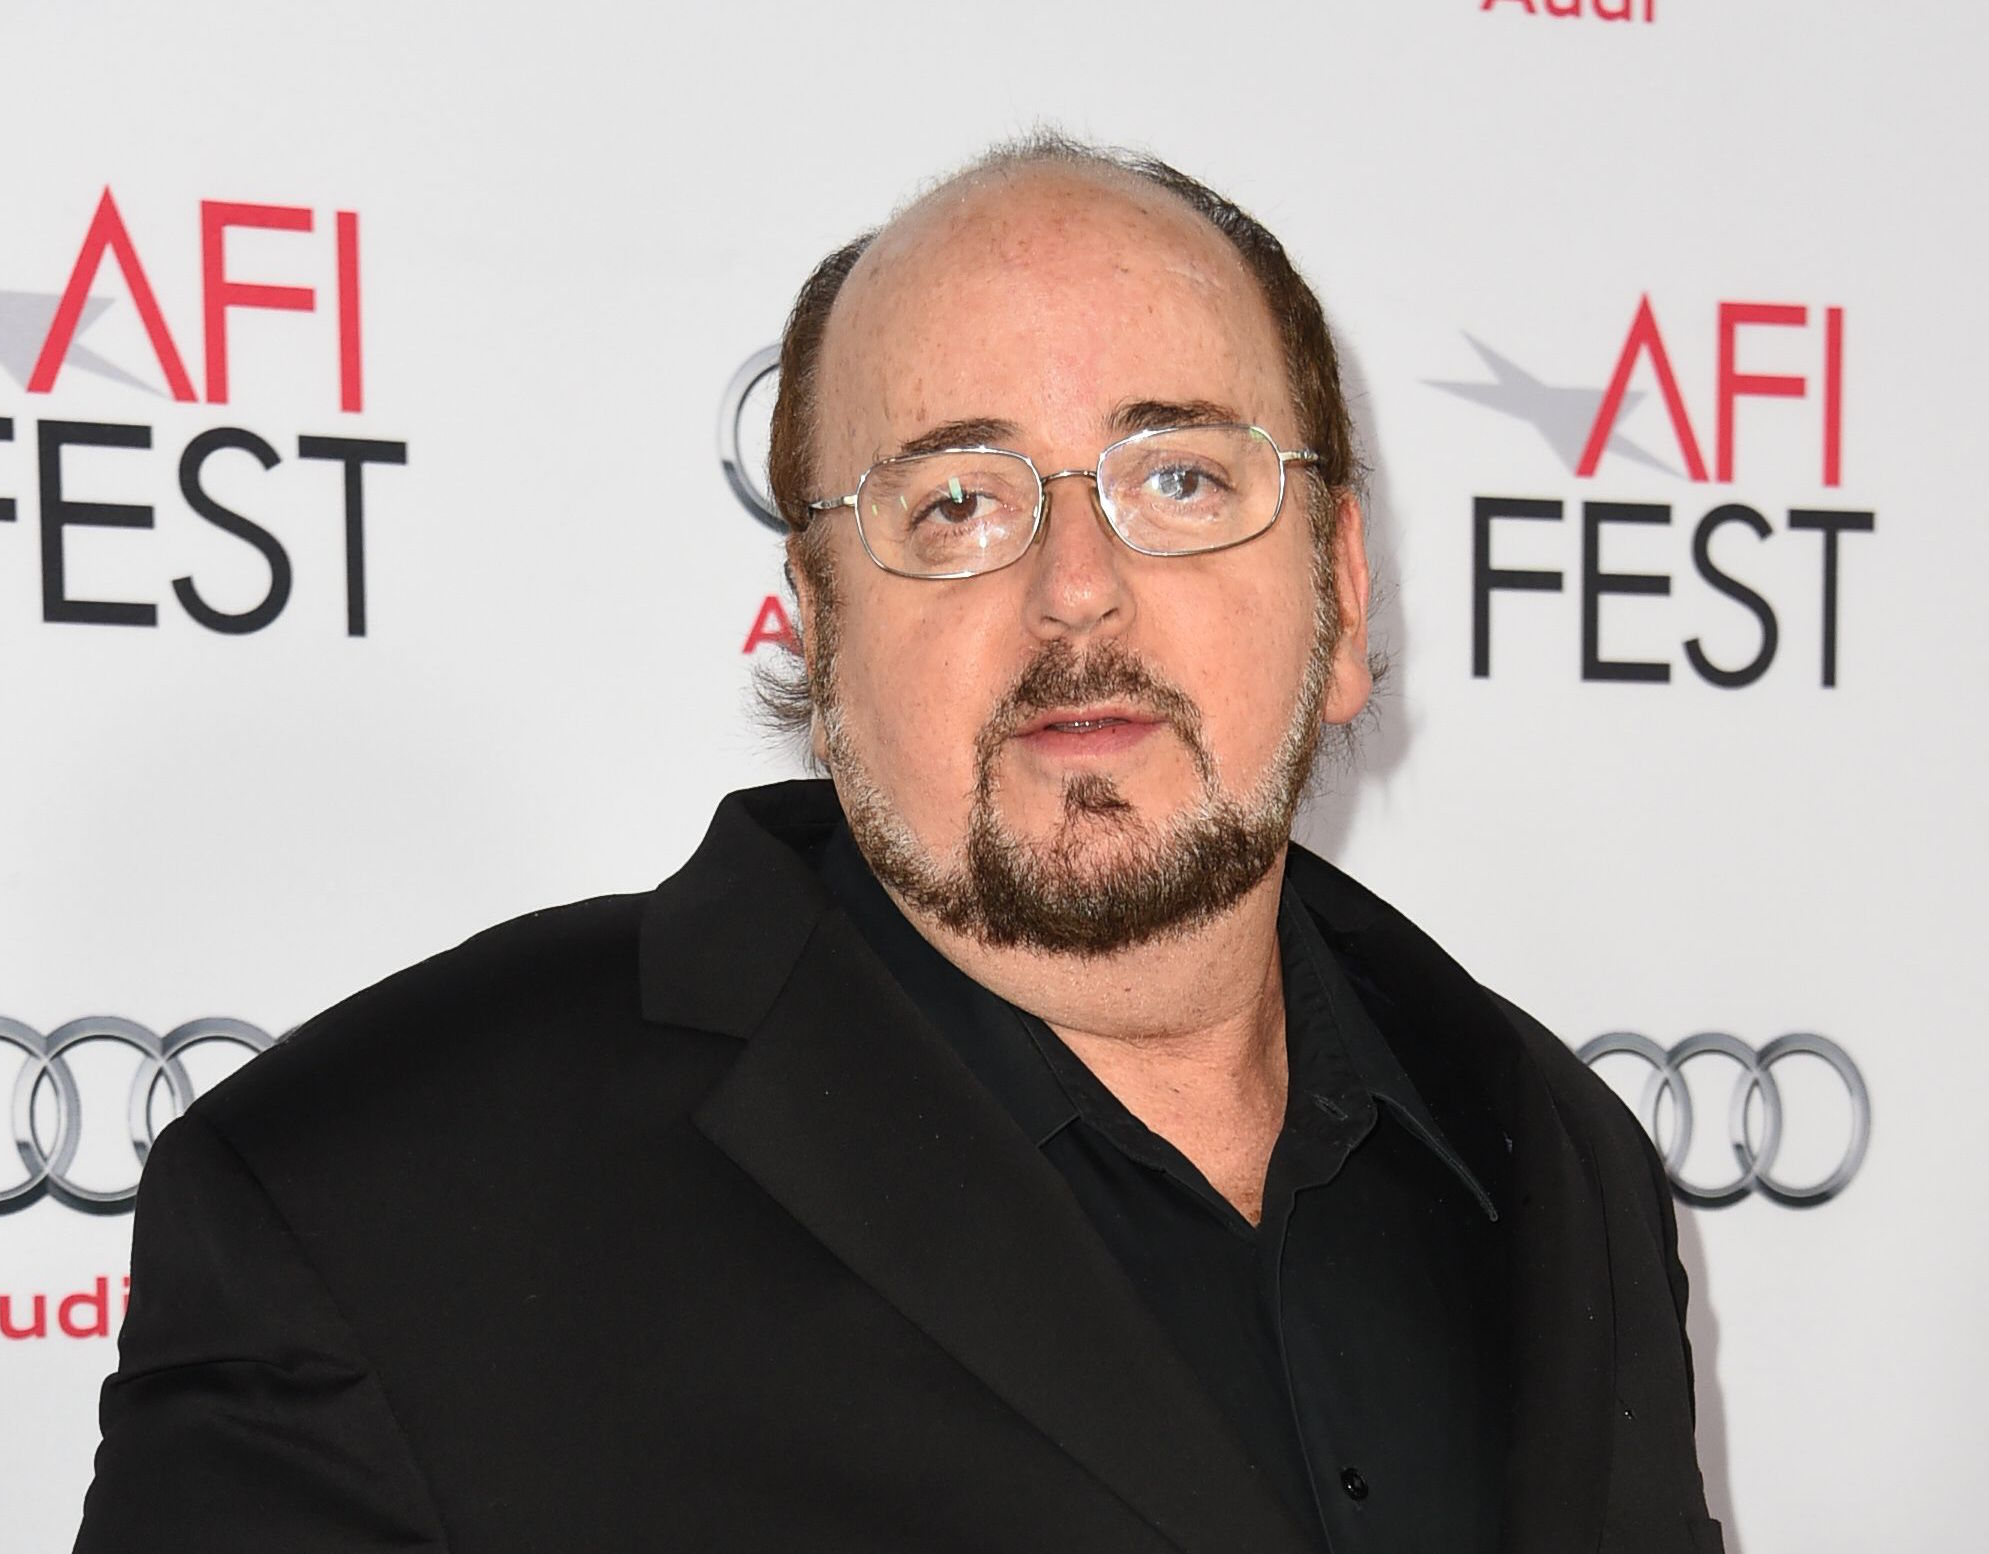 James Toback'The Gambler' film premiere, Los Angeles, America - 10 Nov 2014